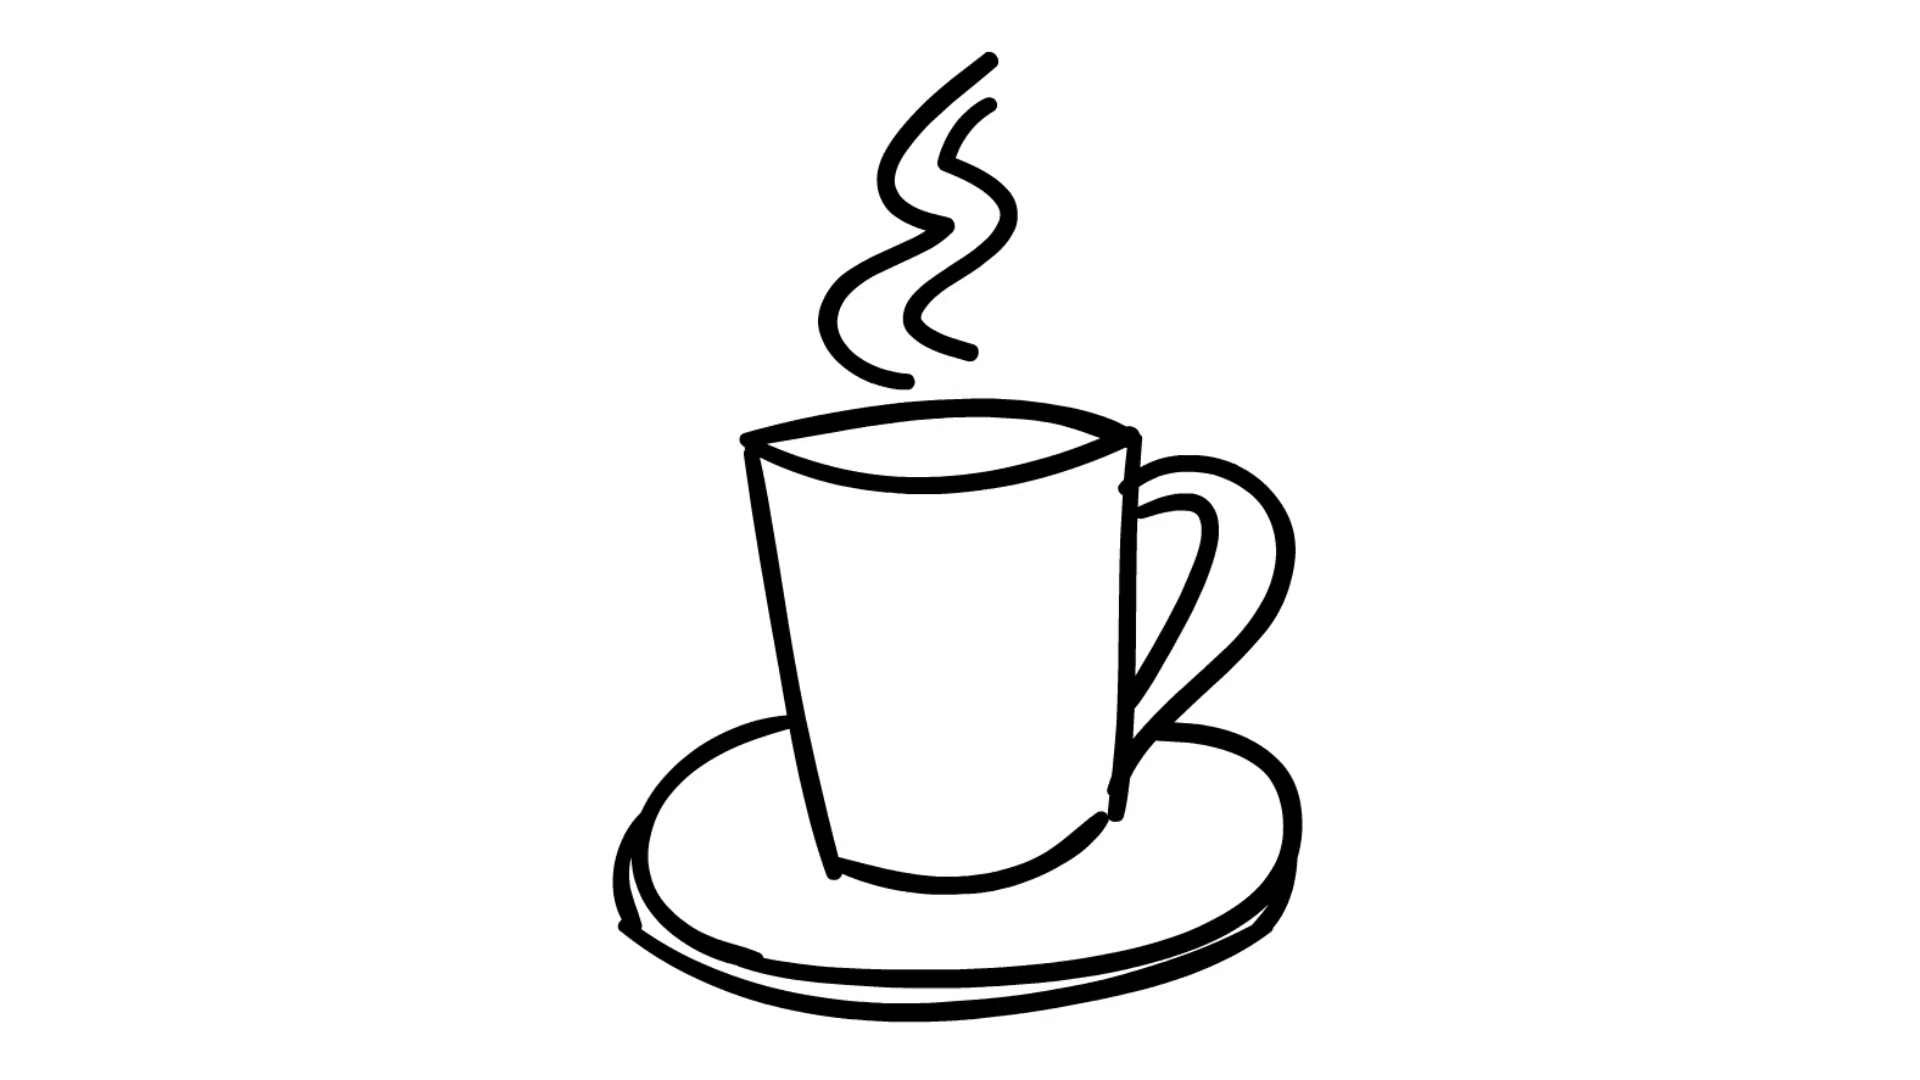 1920x1080 Hot Coffee Tea Cup Line Drawing Illustration Animation Trasnparent